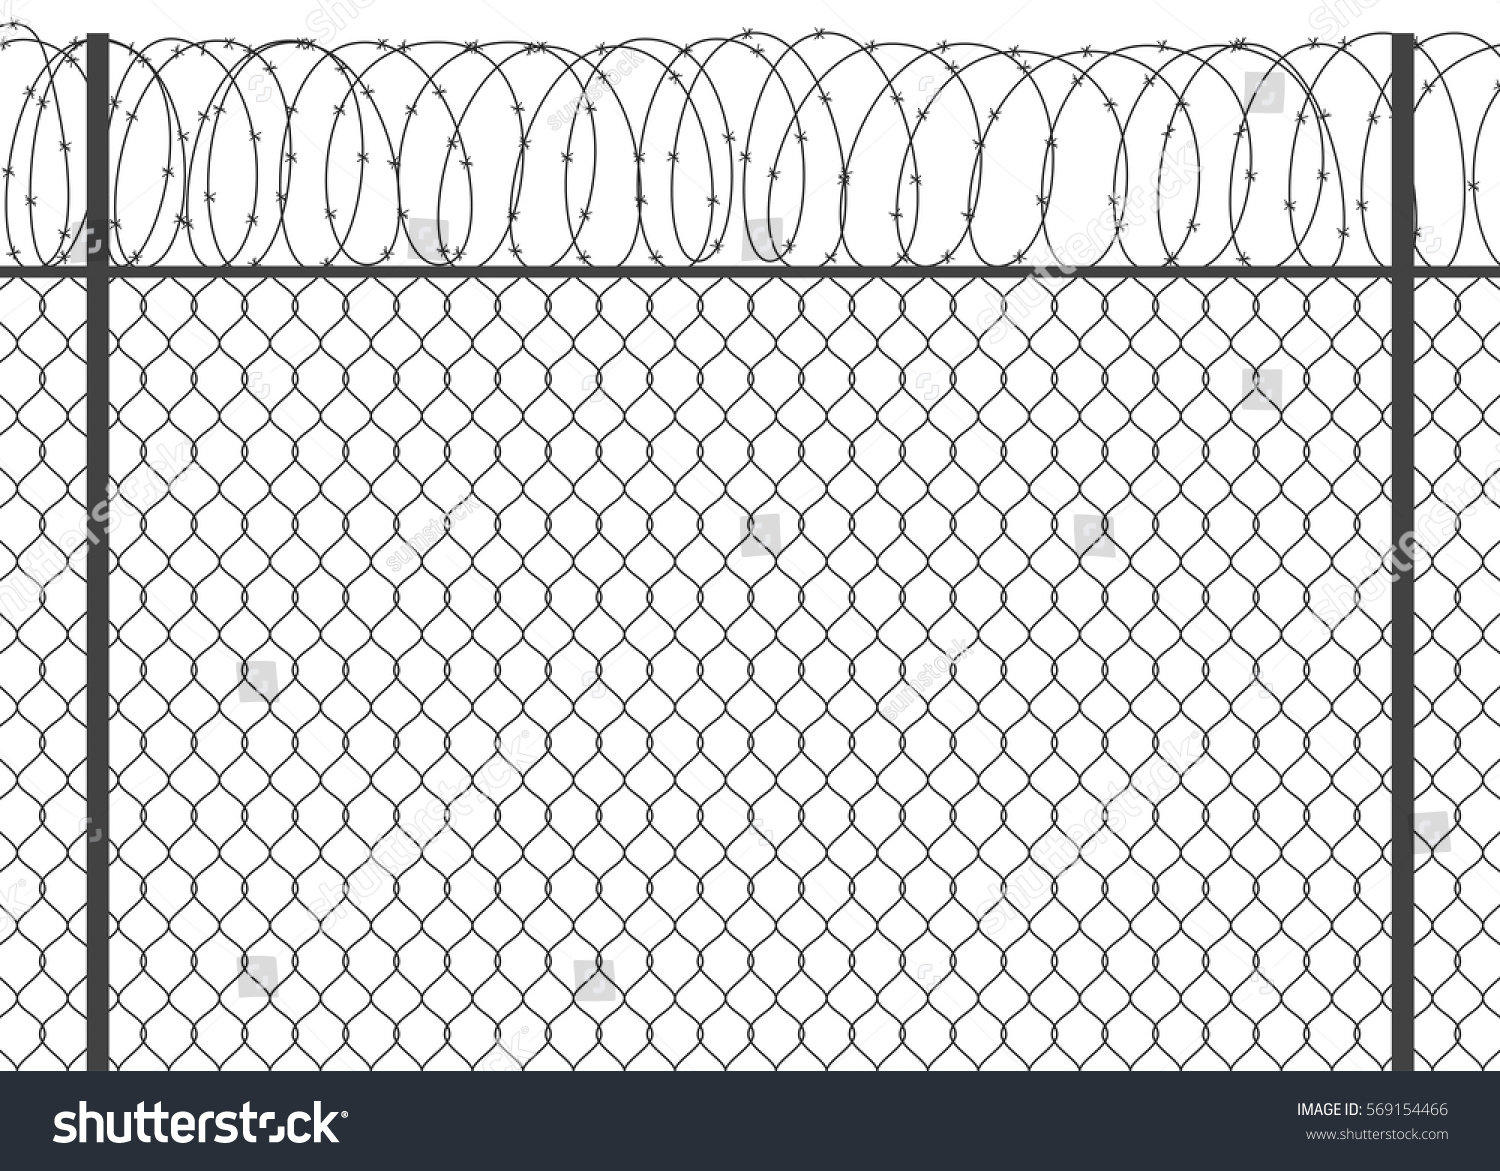 Metal Fence Barbed Wire Stock Vector 569154466 Shutterstock